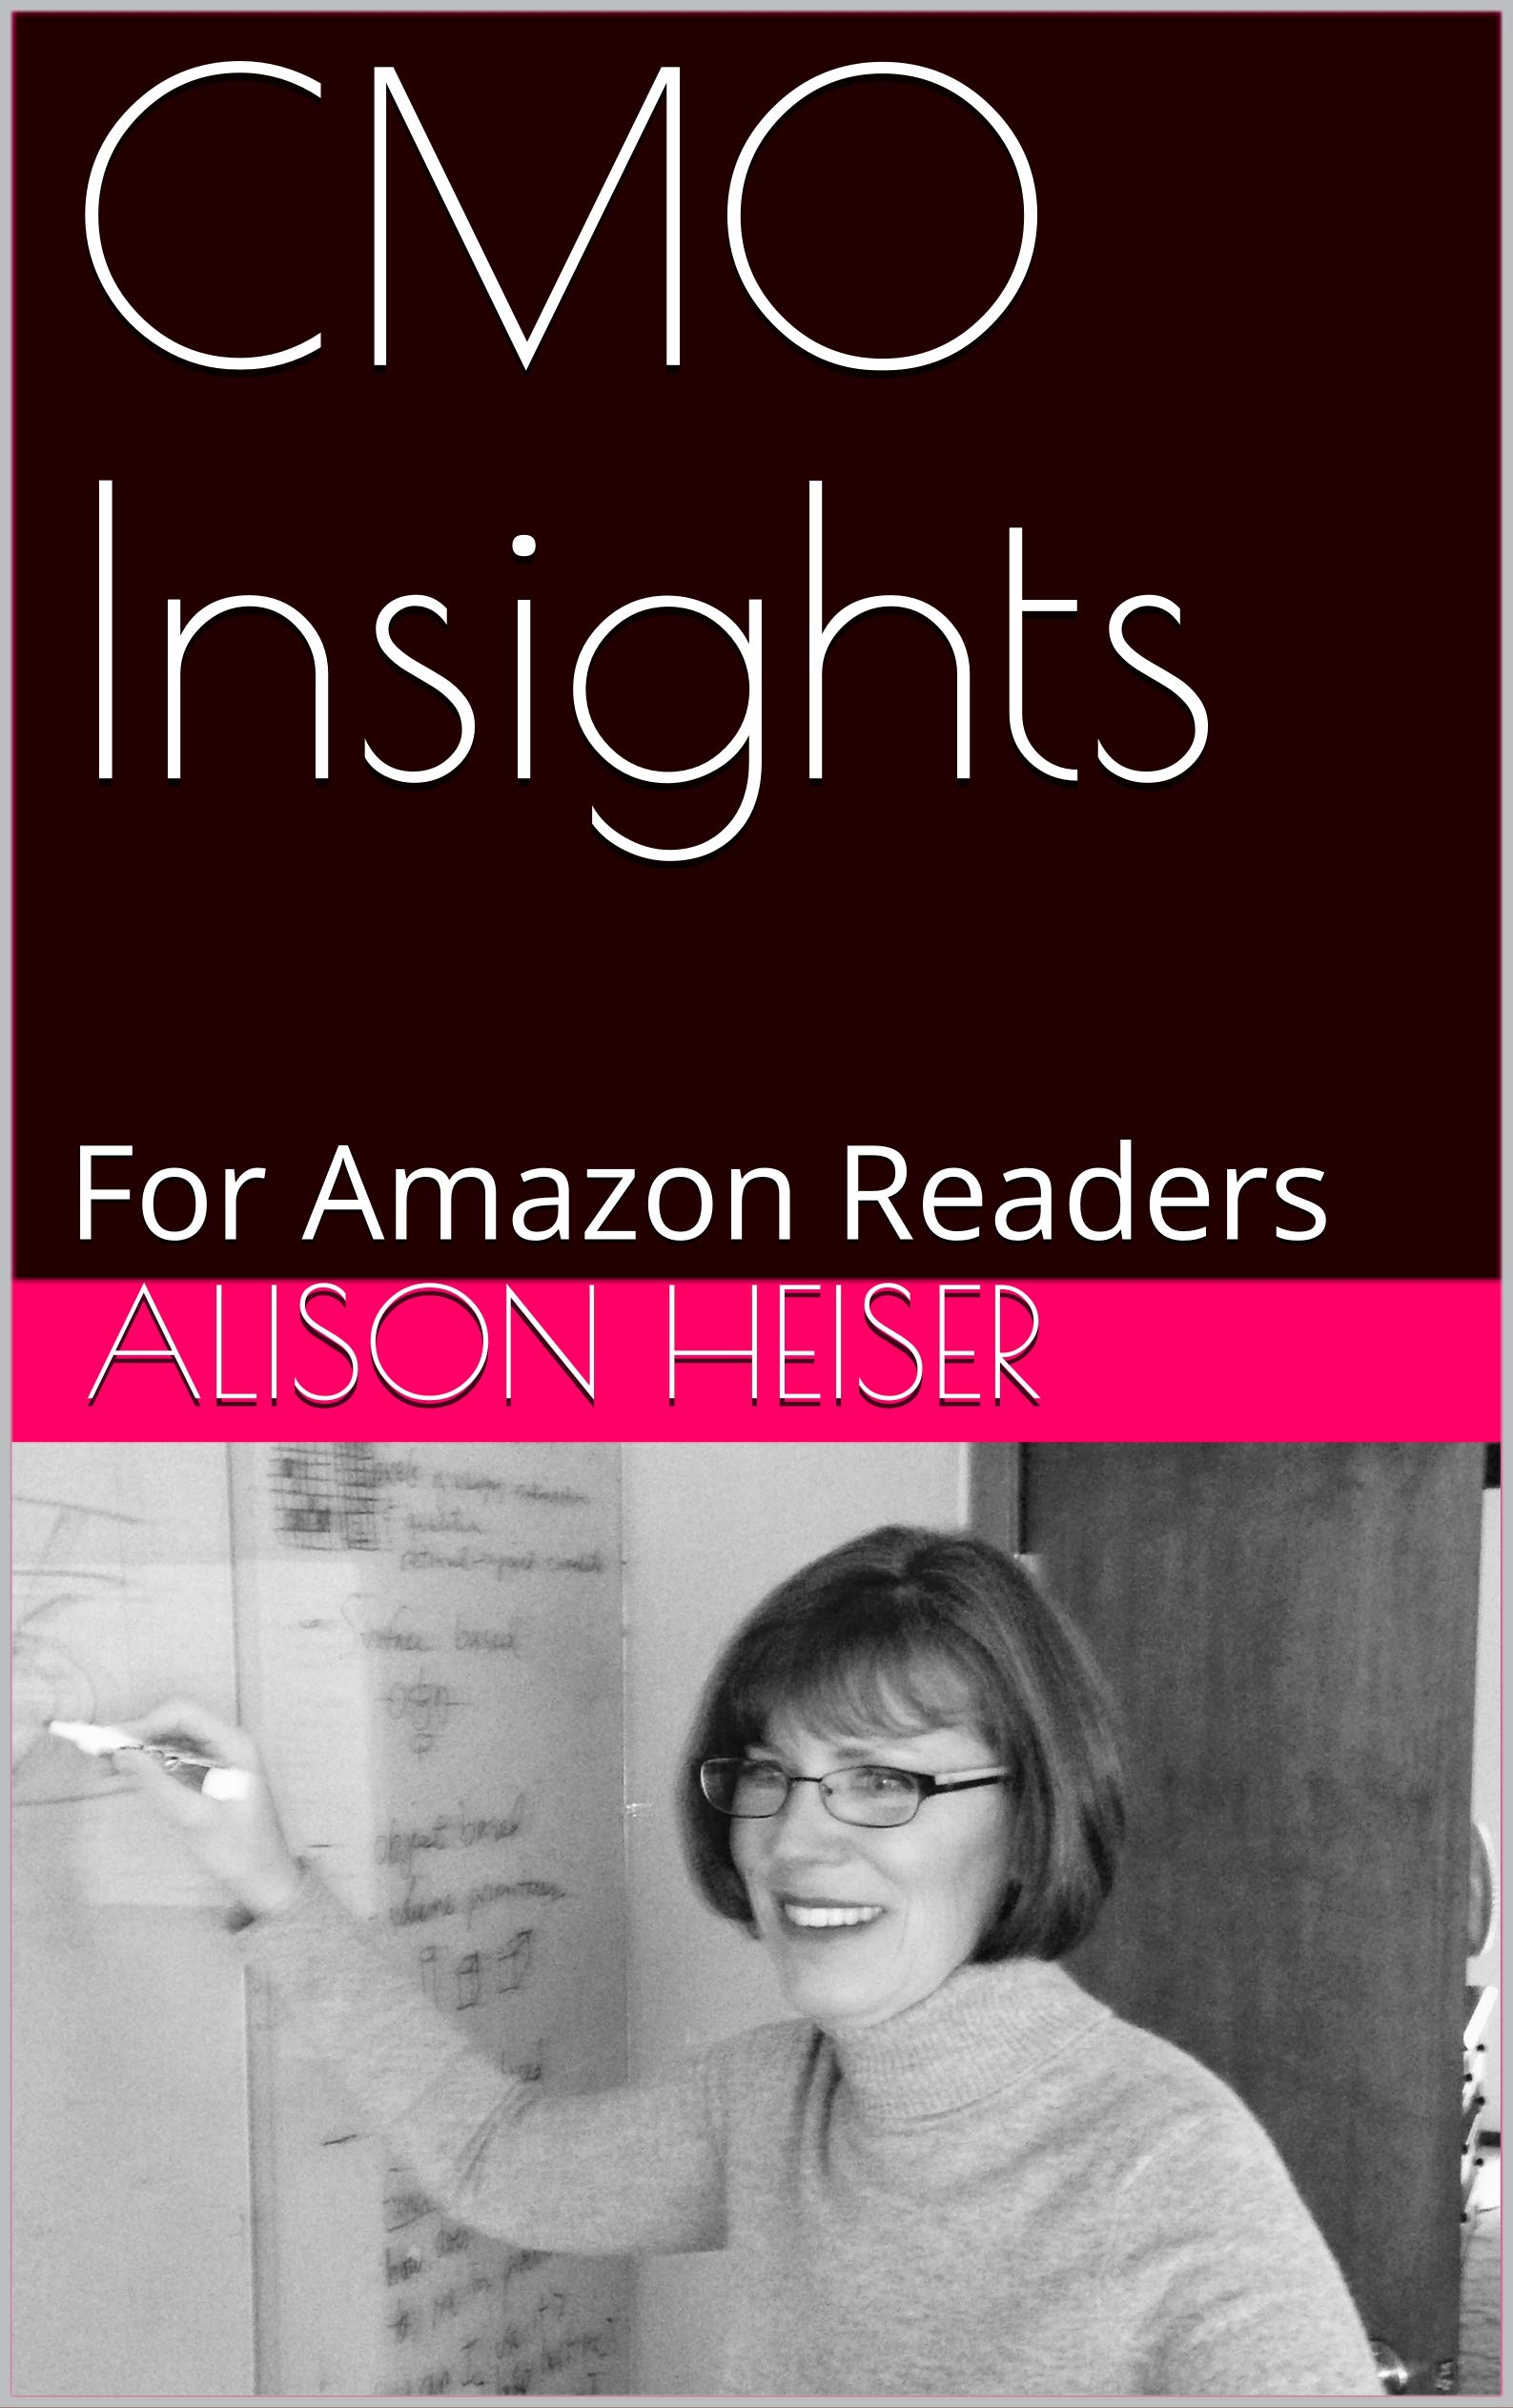 CMO Insights: For Amazon Readers